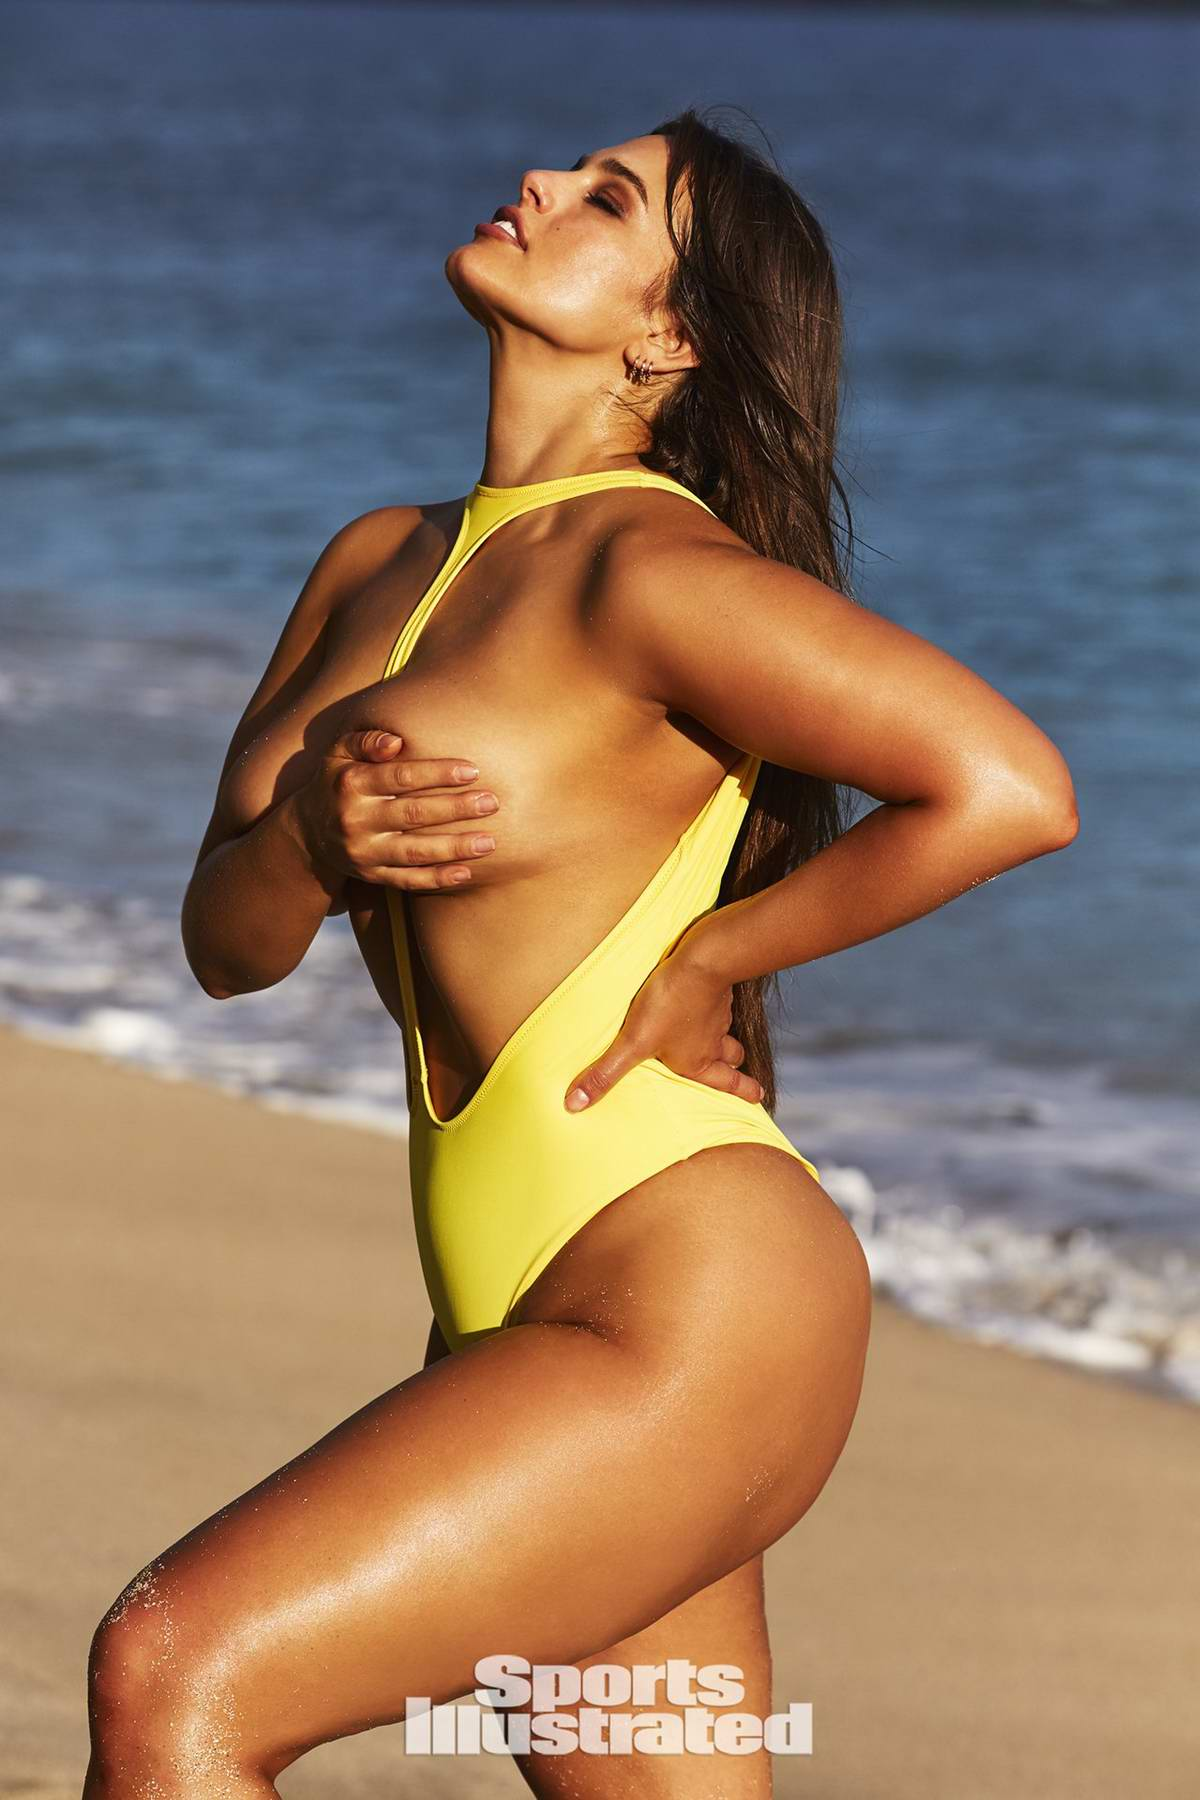 587a3ab541 ashley graham in sports illustrated swimsuit issue 2018_22